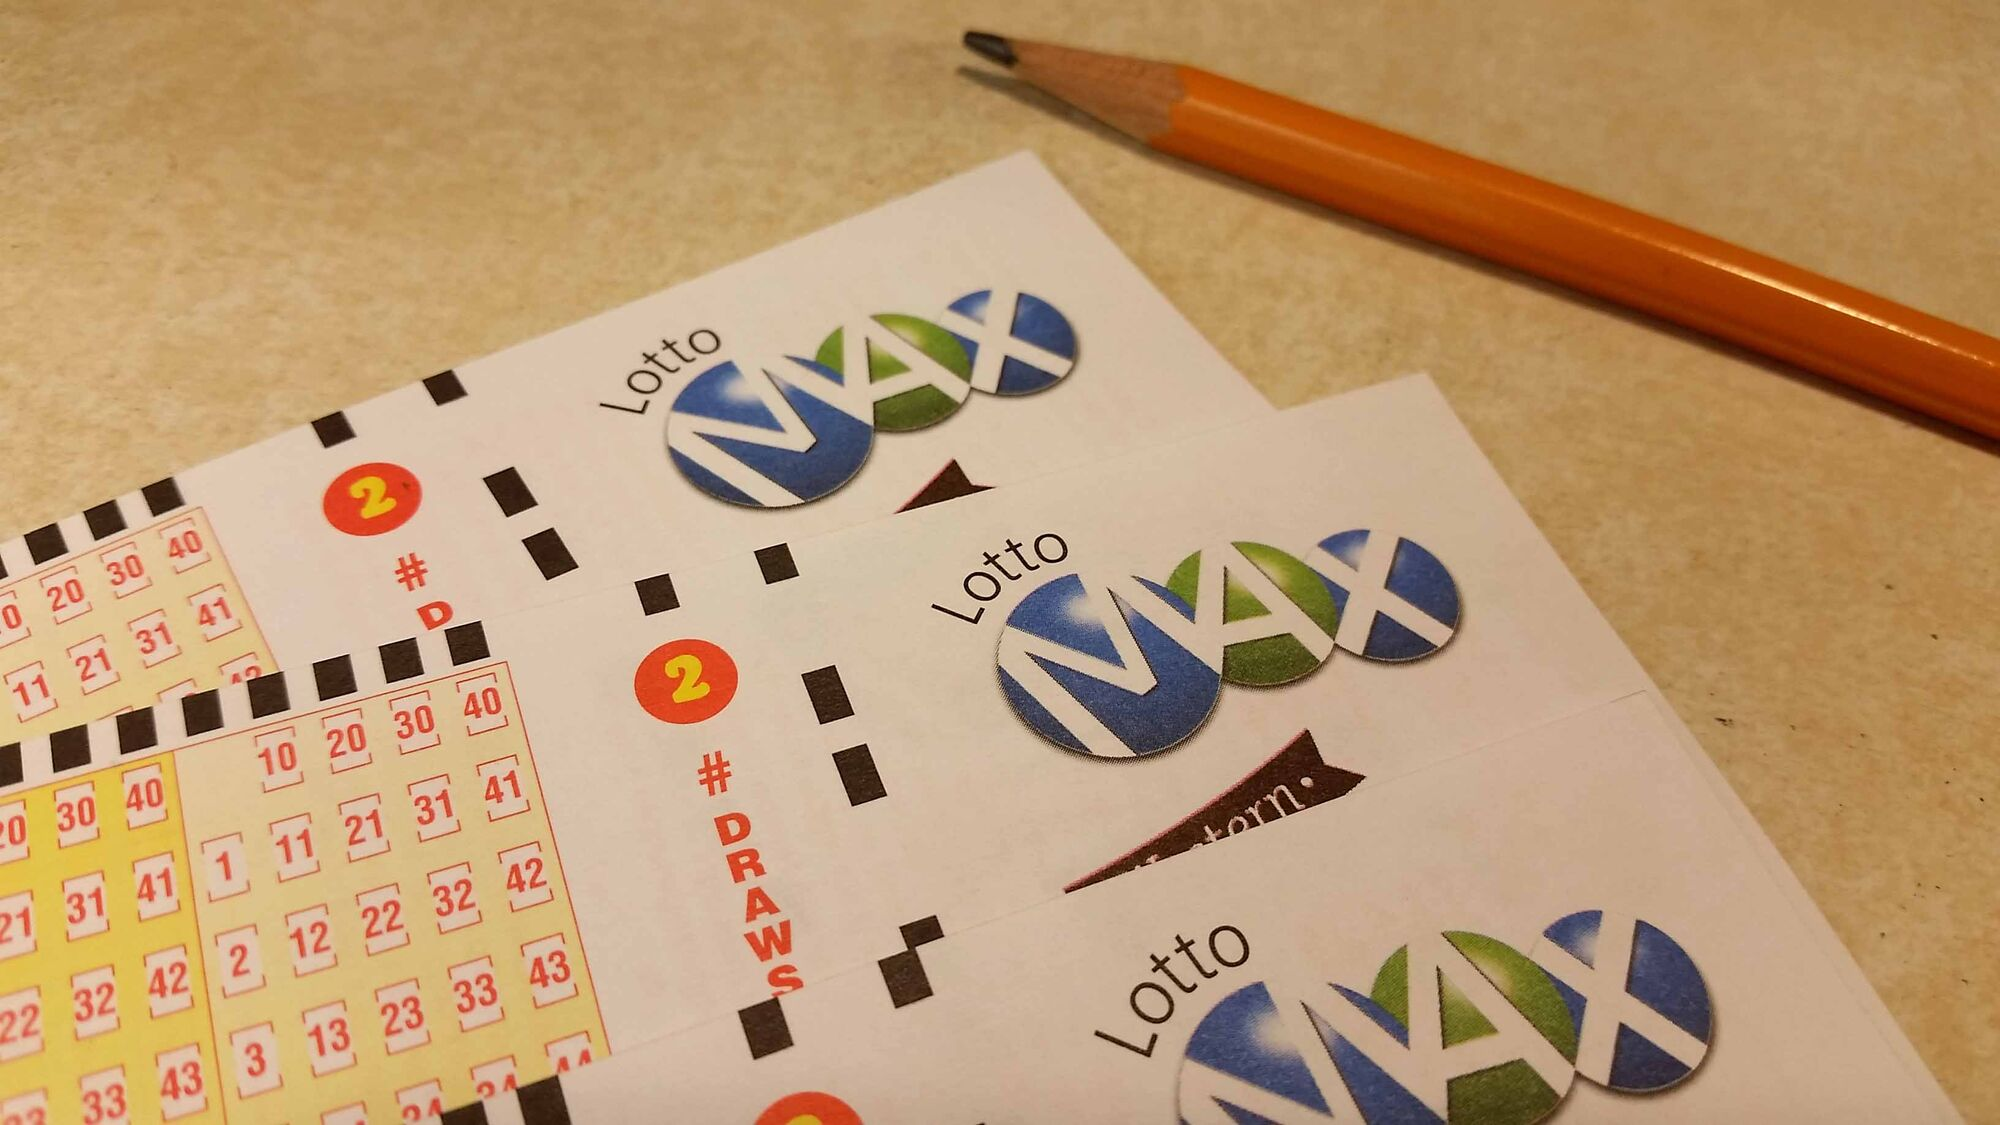 The recent $60-million winning lottery ticket in Manitoba was sold online owing to pandemic restrictions.